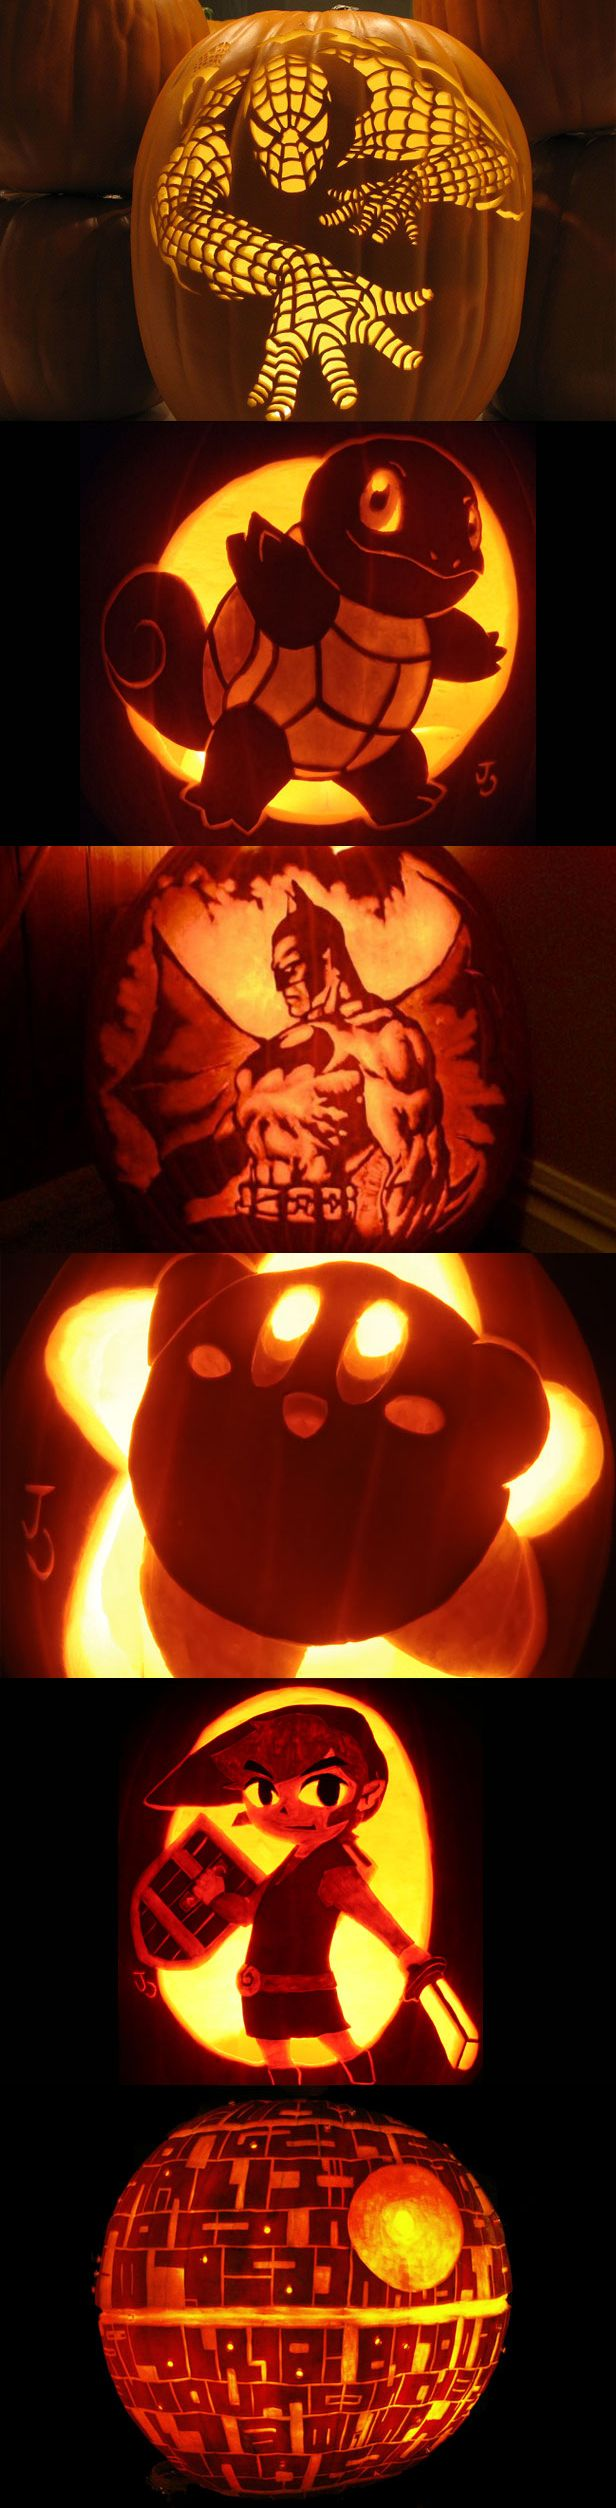 asics running shoes for womens Cool Jack O Lanterns for Halloween   In order   Spiderman   Squirtle from Pokemon   Batman   Kirby   Link from Zelda   Death Star from Star Wars  VideoGames